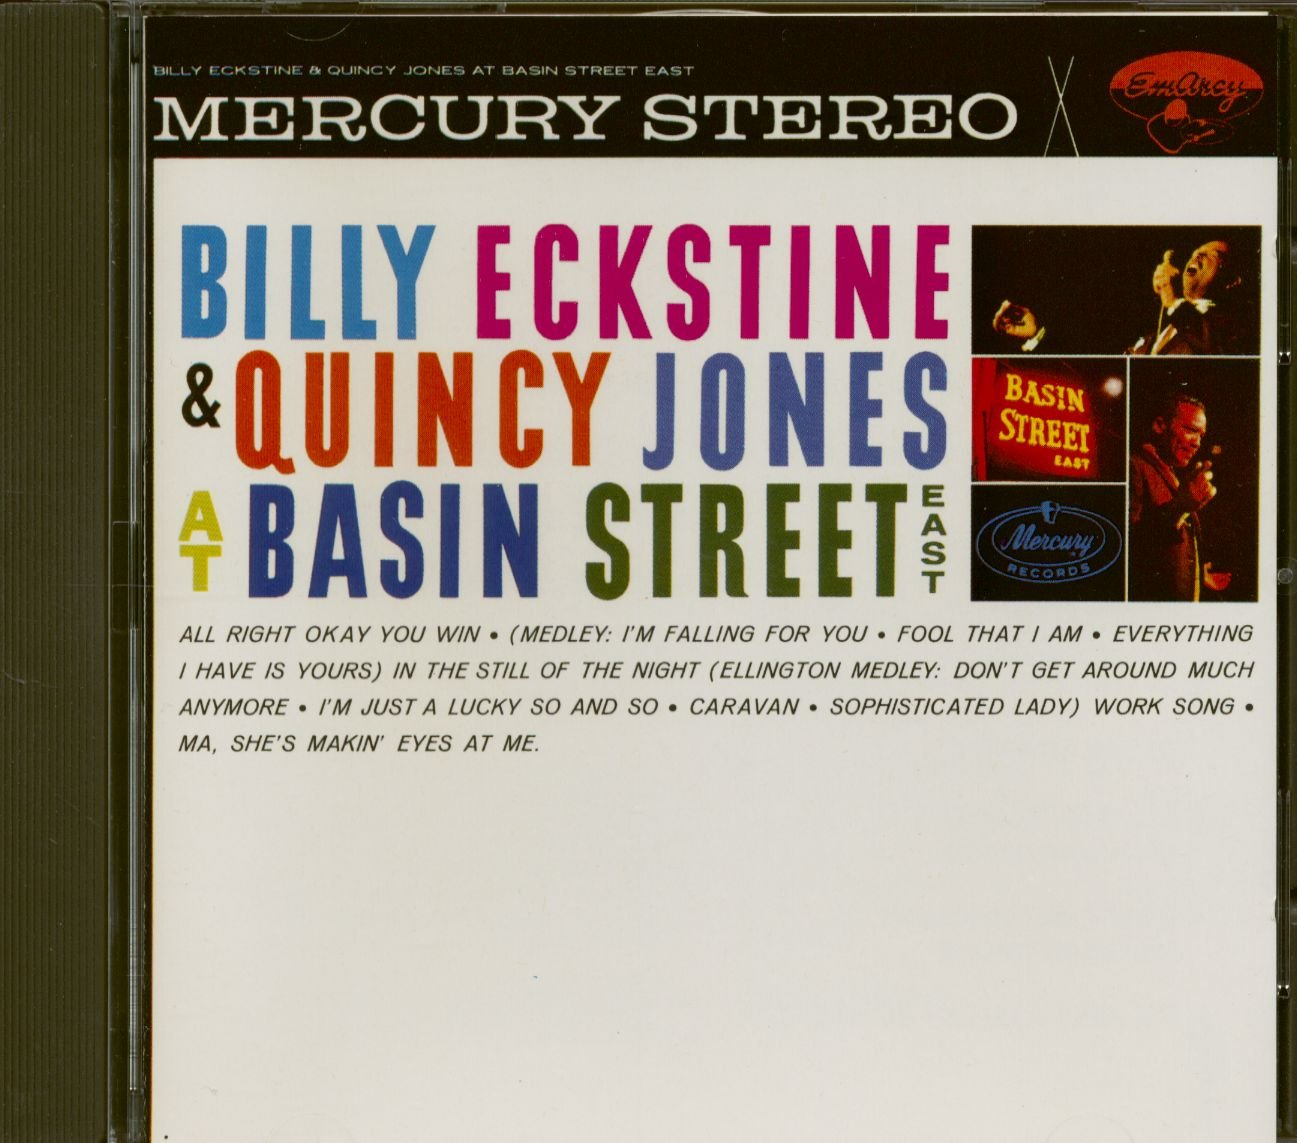 At Basin St. East : Live! by Eckstine, Billy